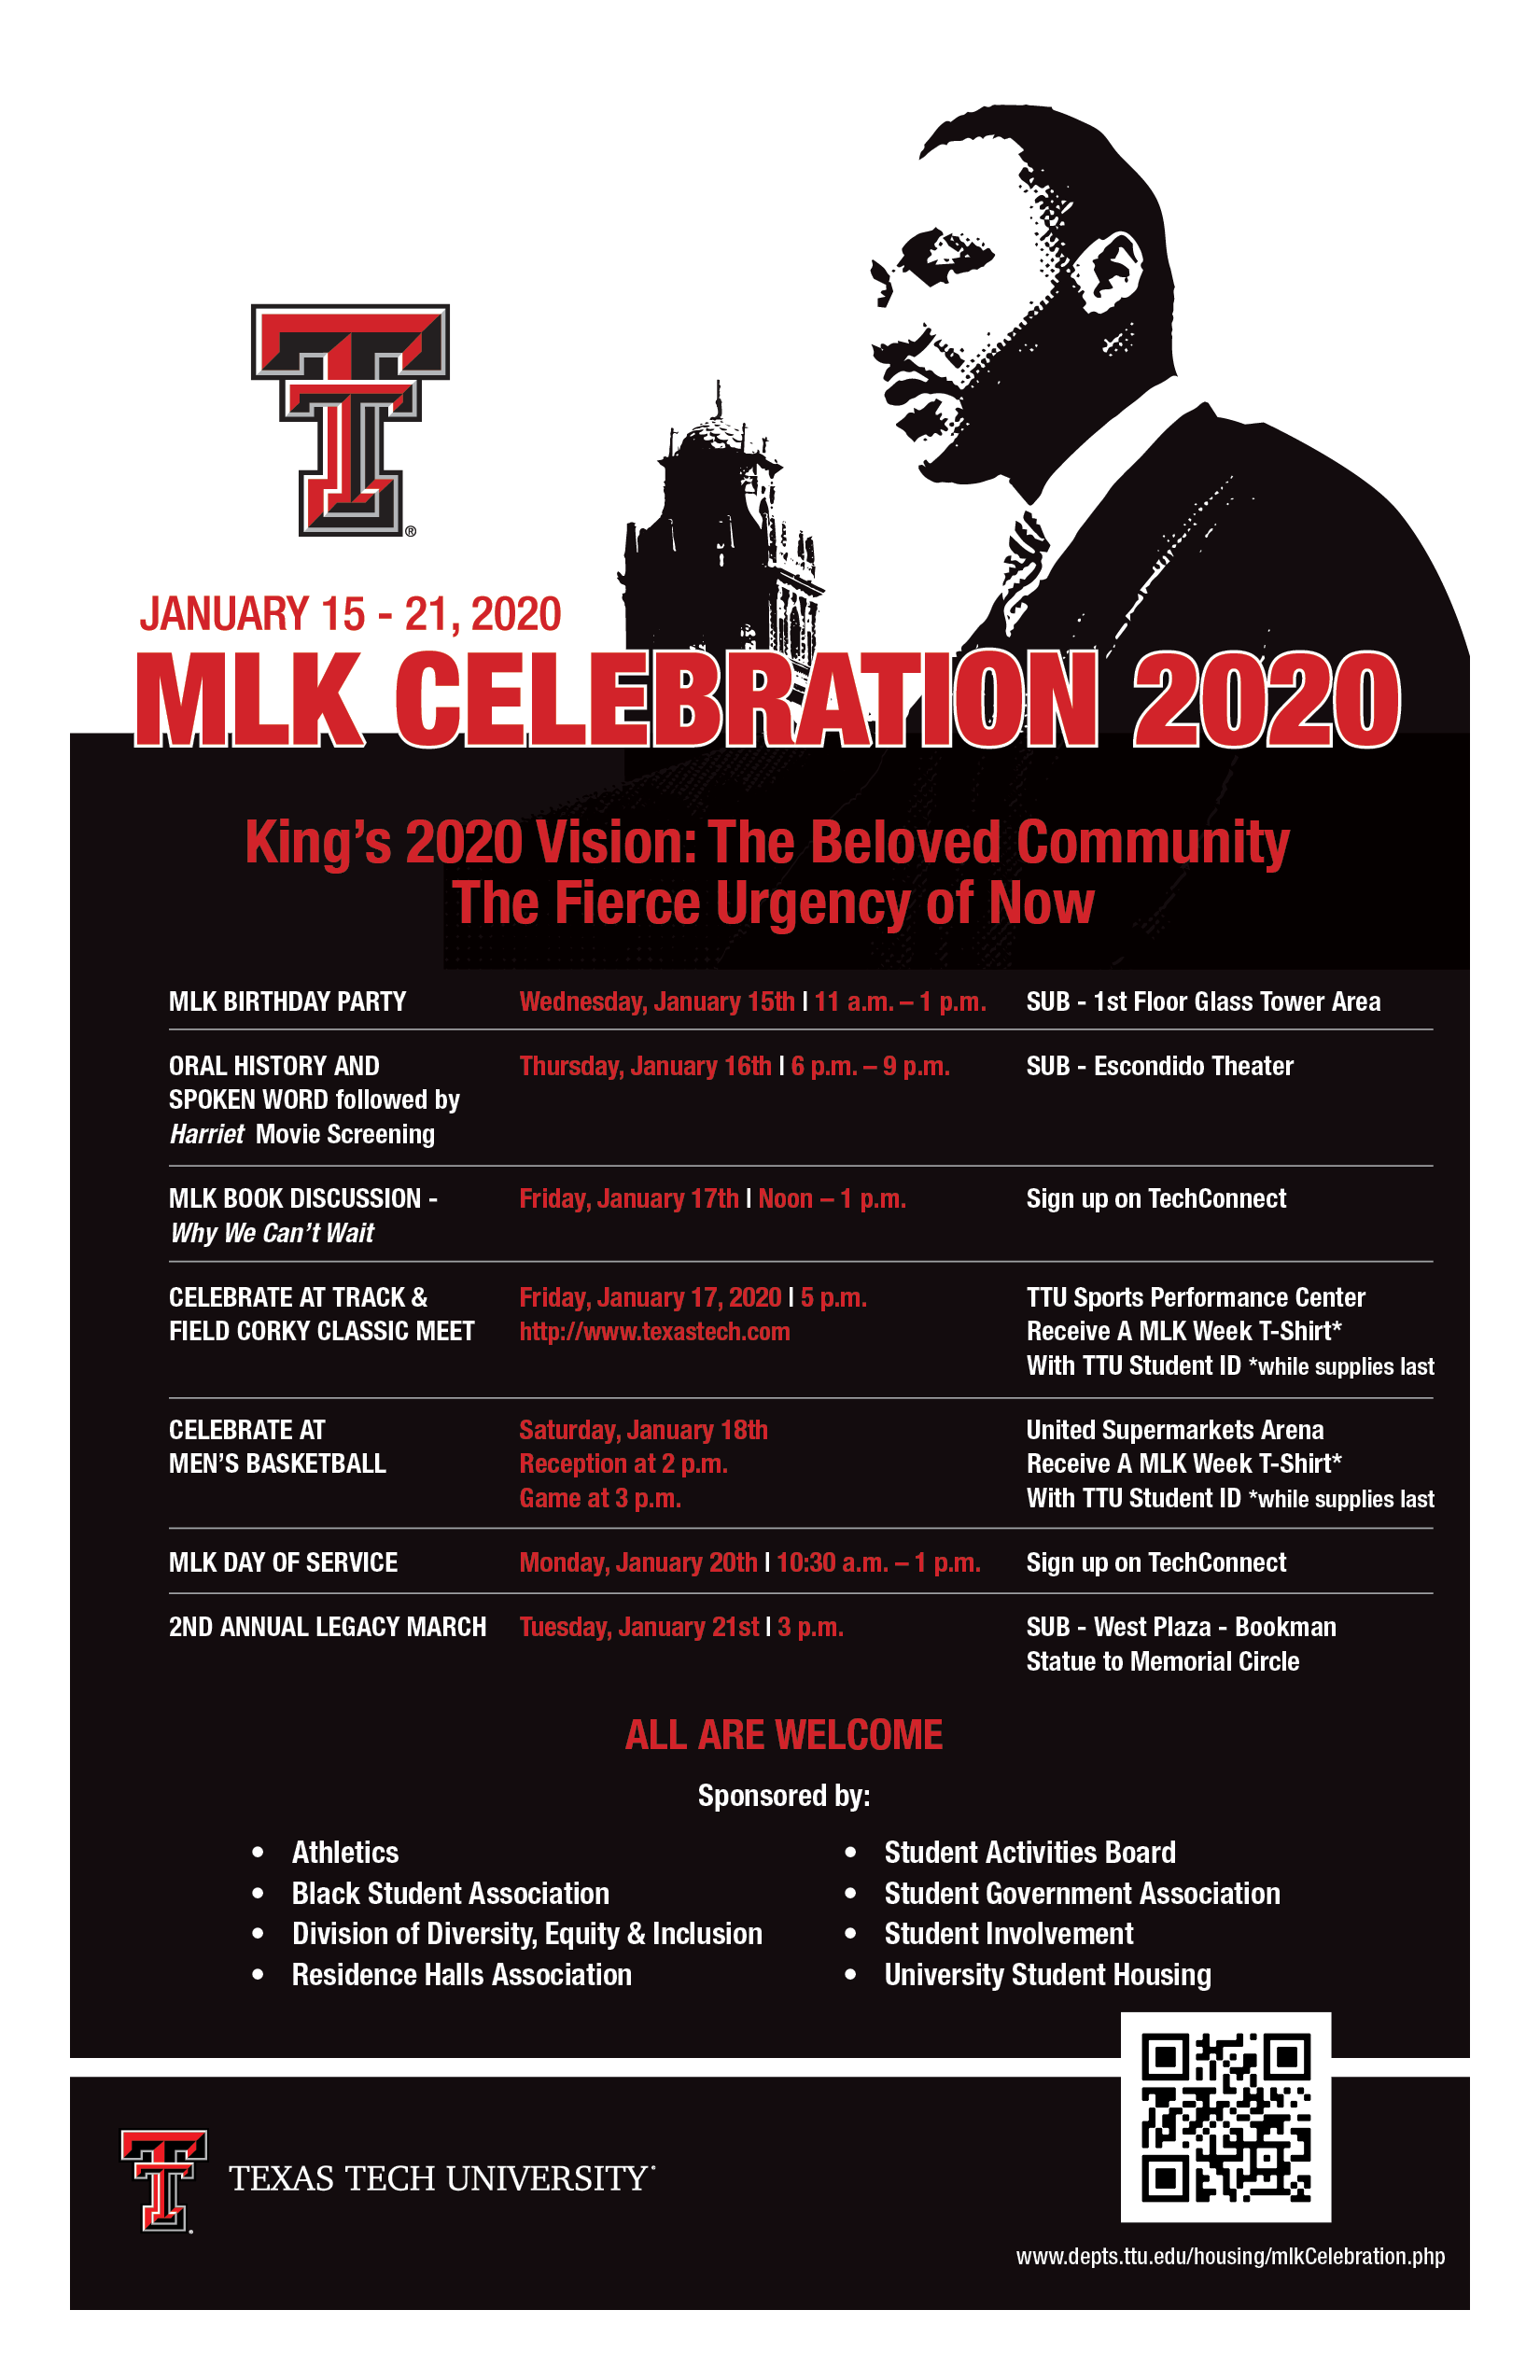 Mlk Celebration 2020 | Housing | Ttu Intended For Texas Tech University Holiday Schedule 2021